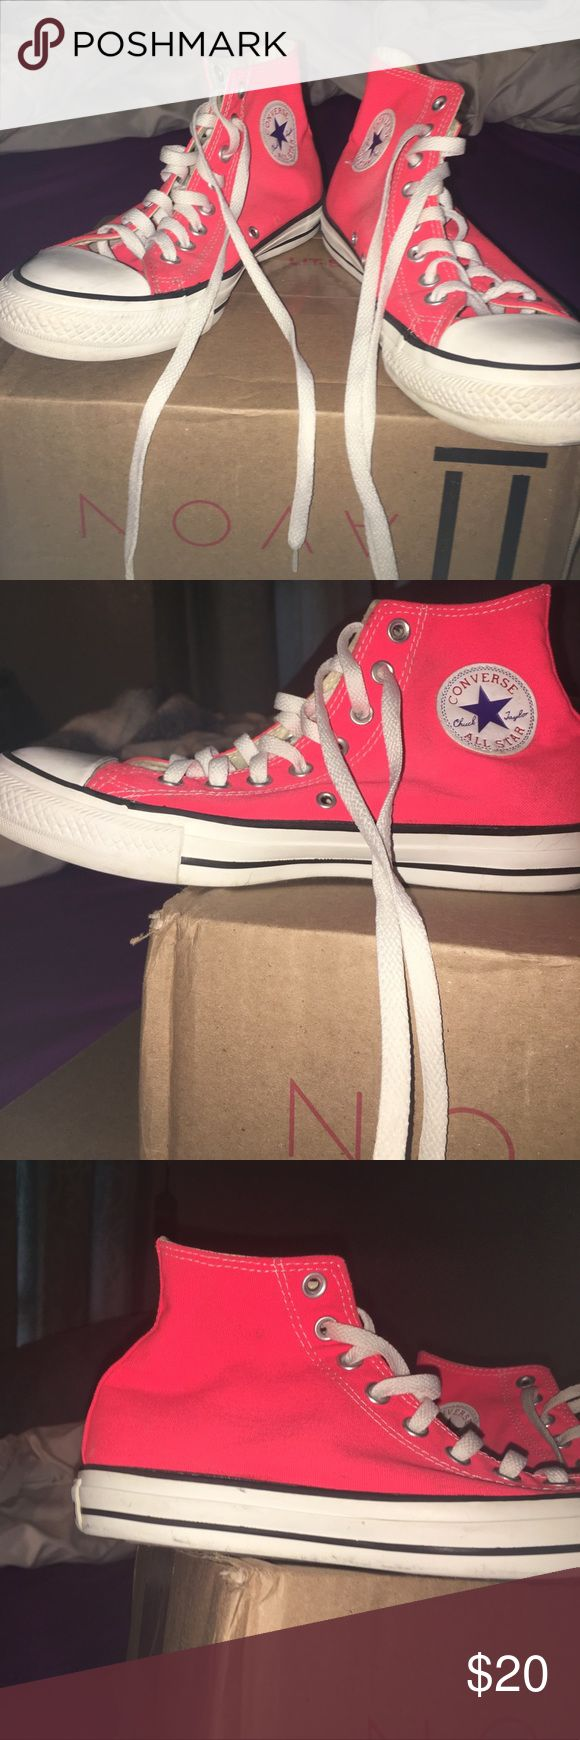 Hot pink high top converse These are hot pink high top converse, these have been worn as you can tell. Converse Shoes Sneakers